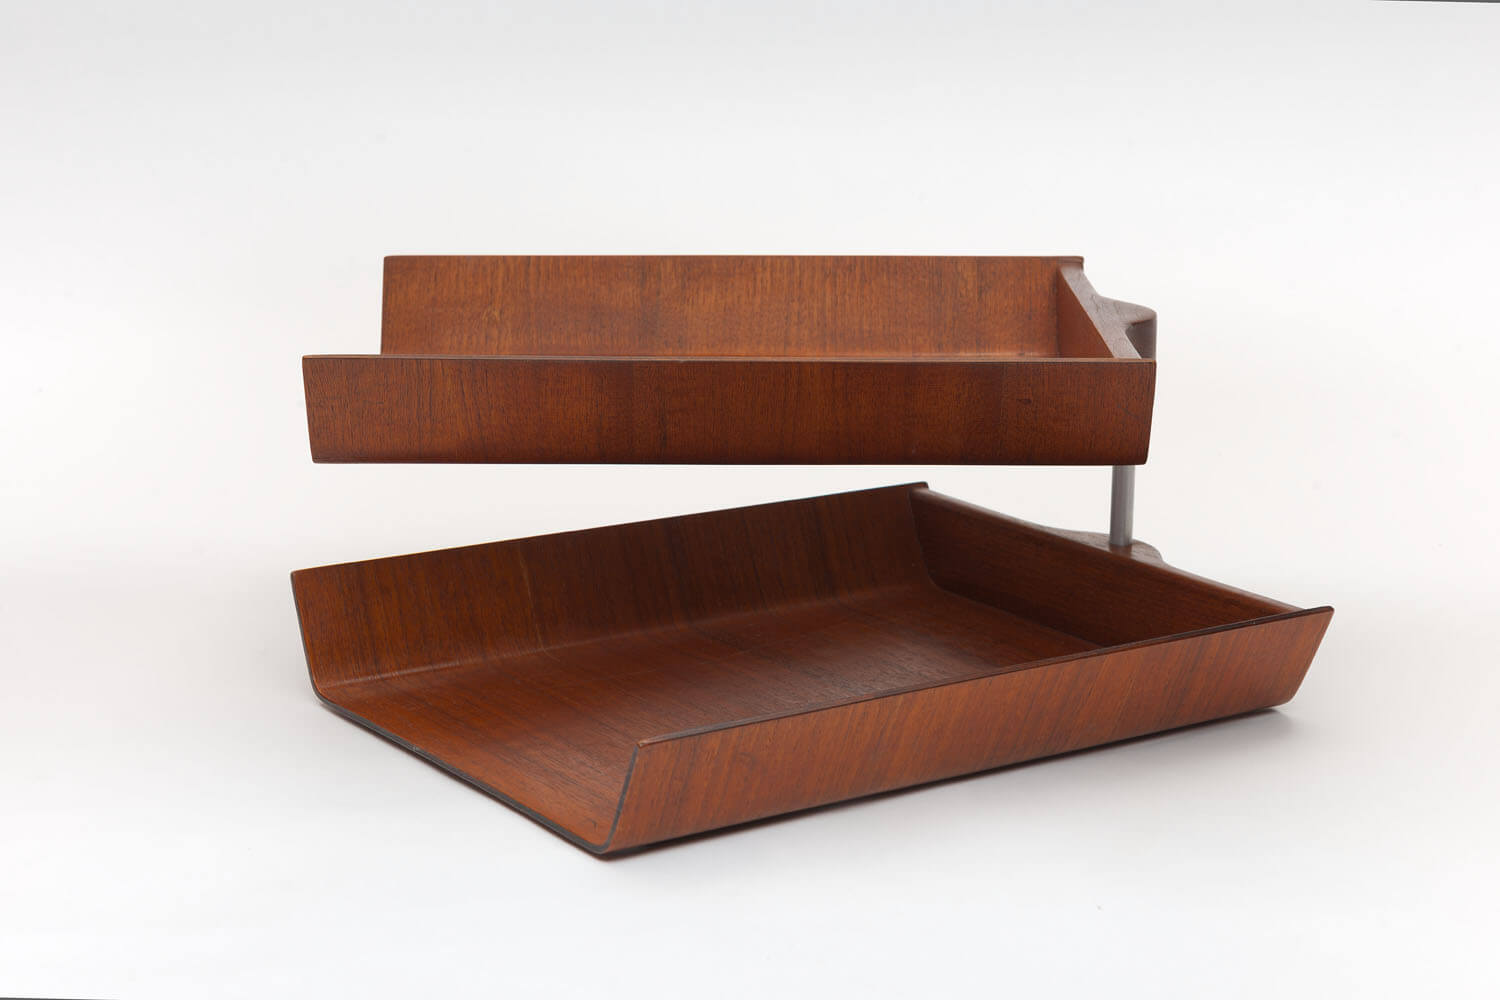 Vintage Double Pivoting Desk Tray